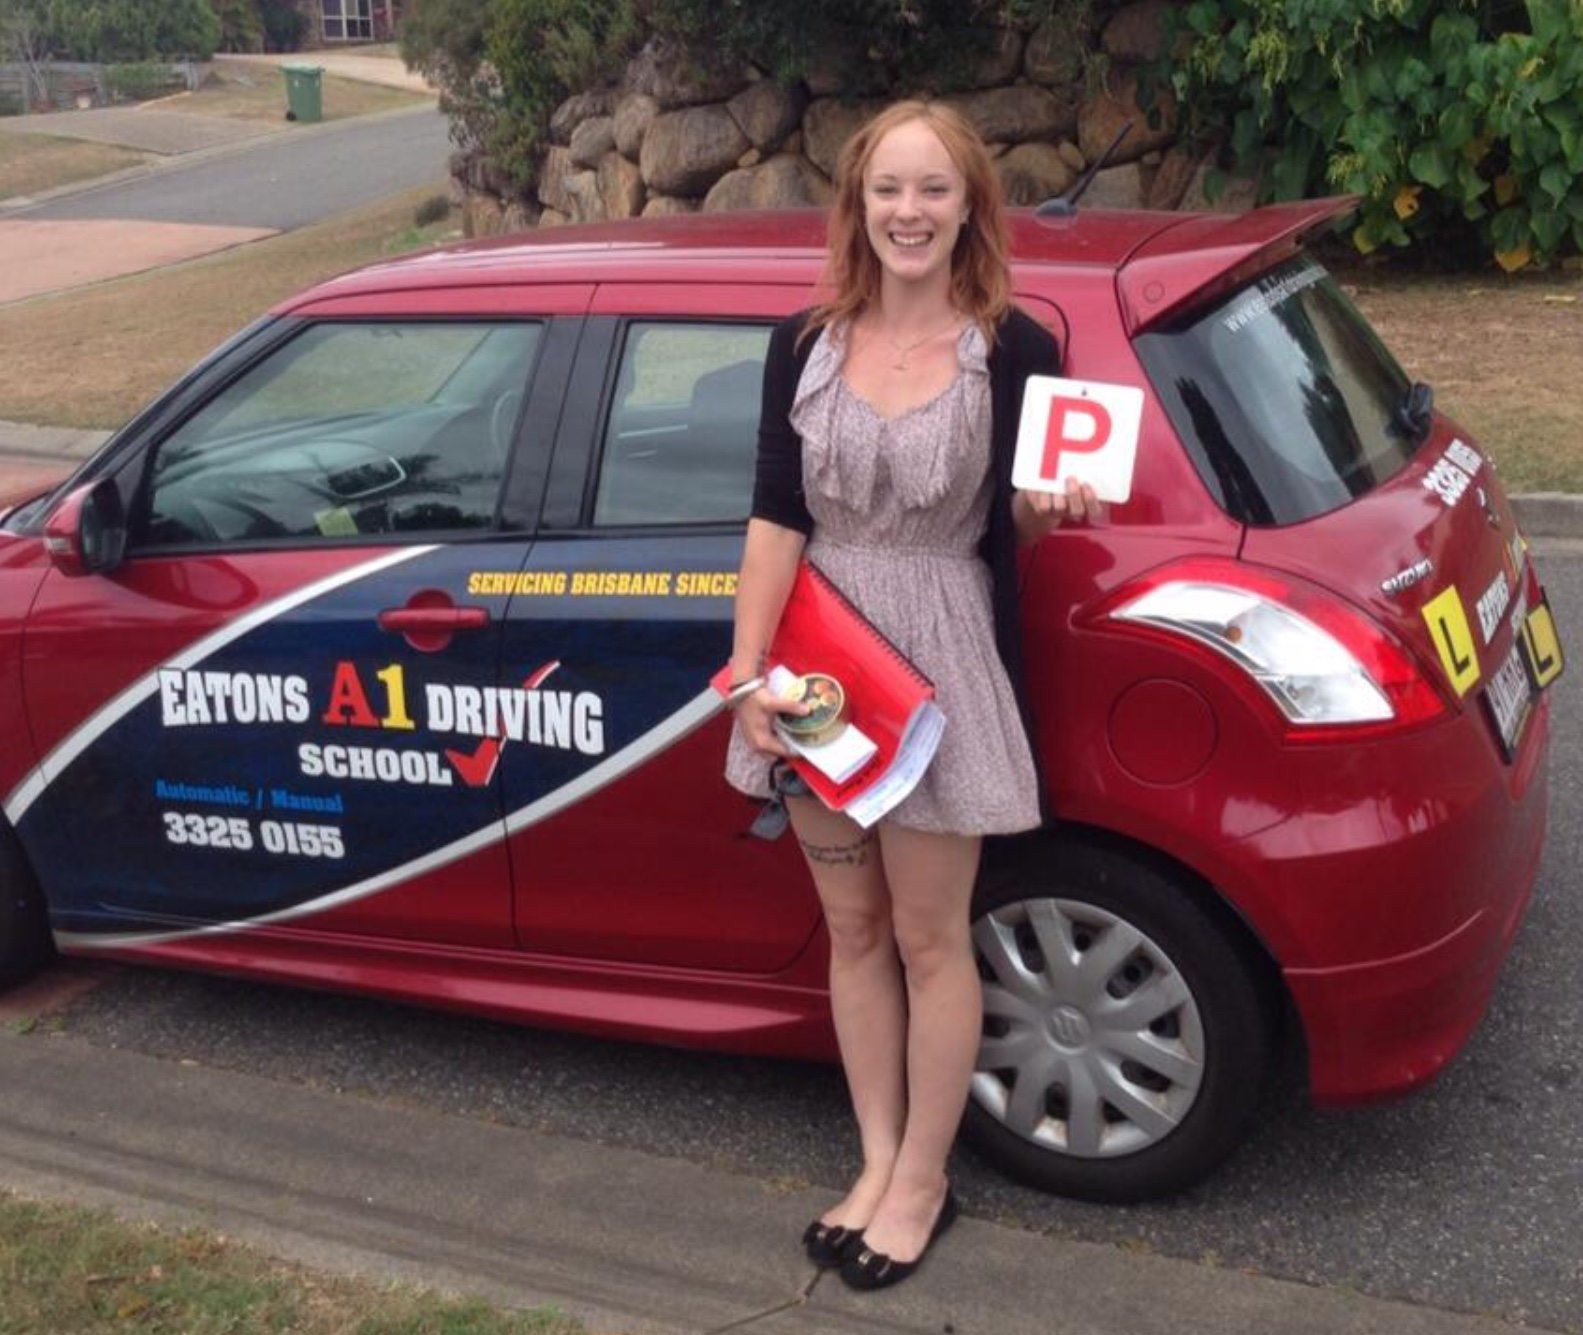 Eatons A1 Driving School, Driving Instructor